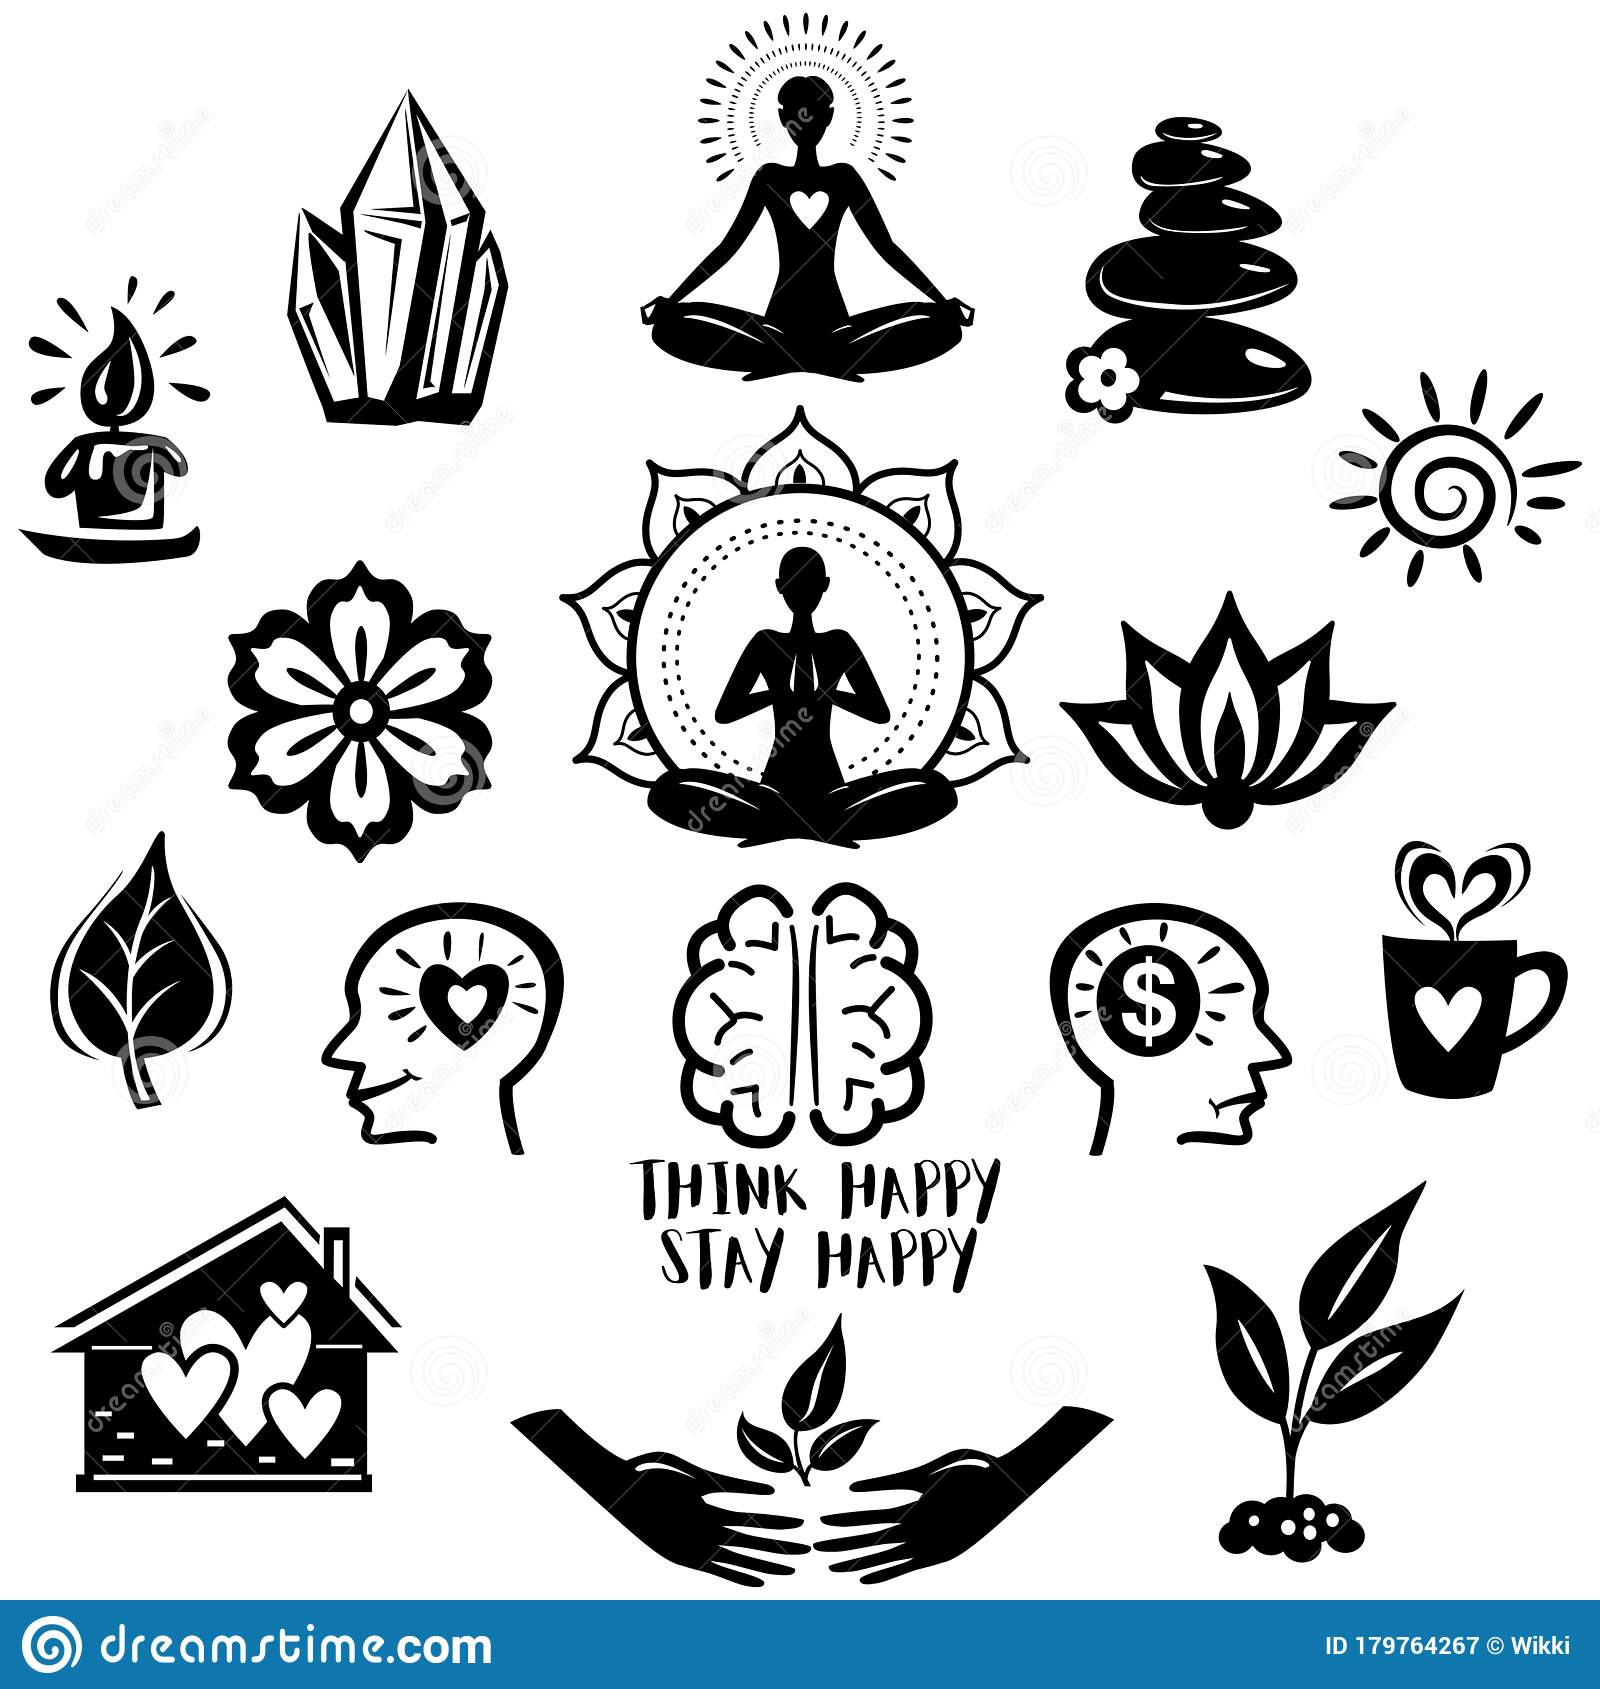 Collection Of Relaxation And Meditation And Yoga Symbols Stock Vector Illustration Of Meditation Home 179764267